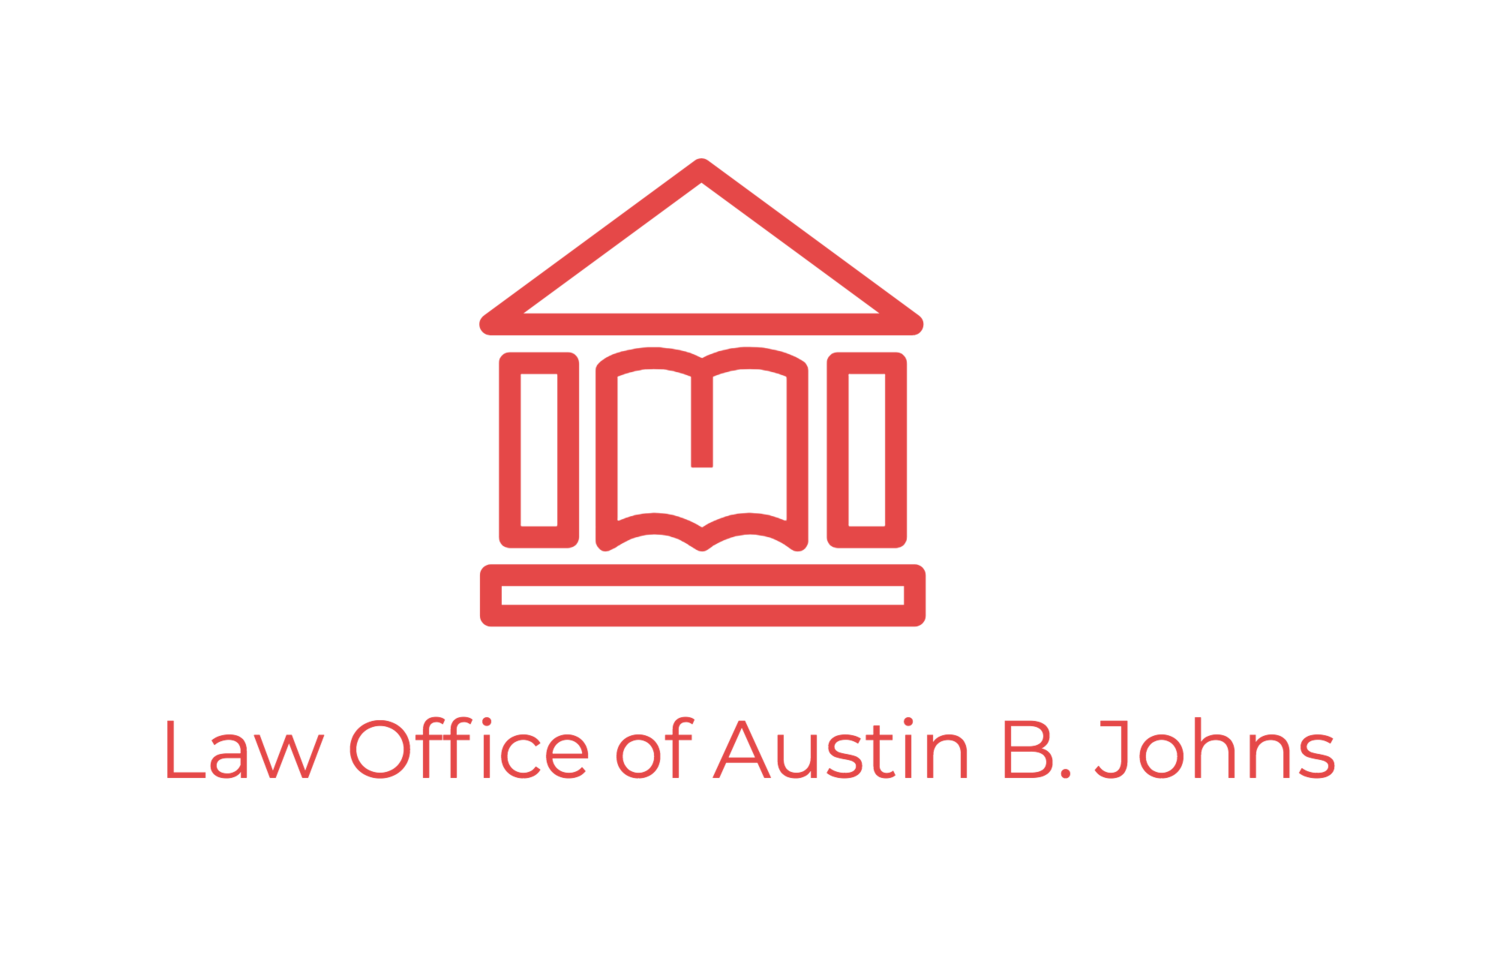 Law Office of Austin B. Johns, LLC